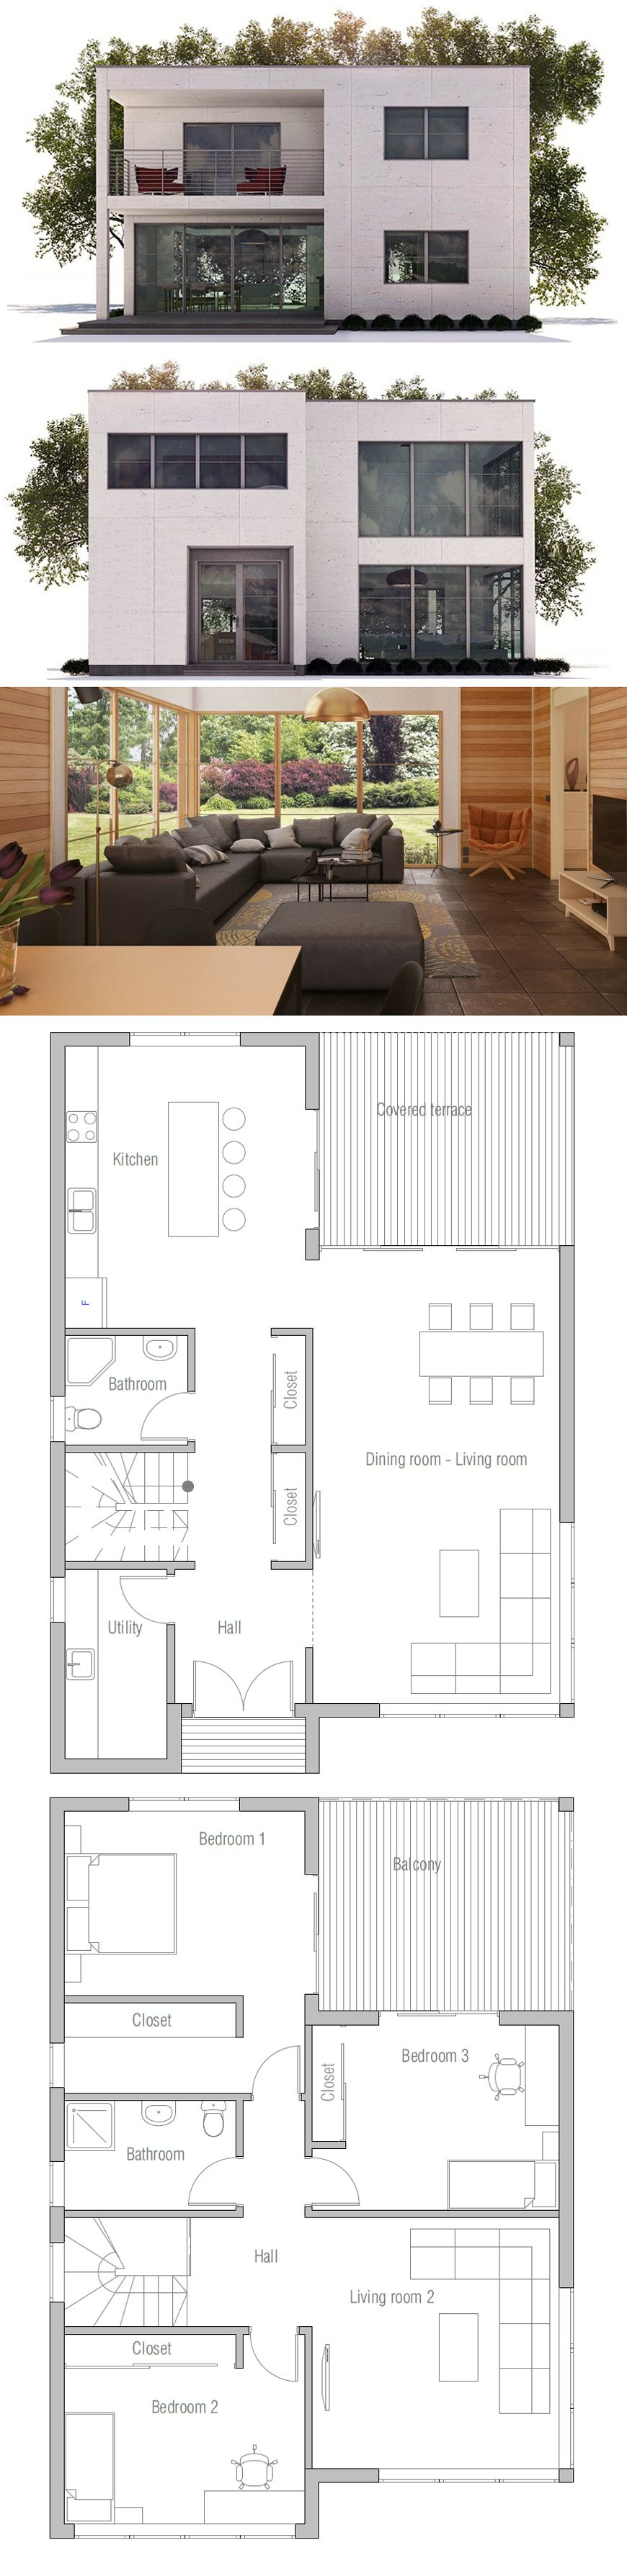 Small House Plan This is very close to what I want Add a rooftop